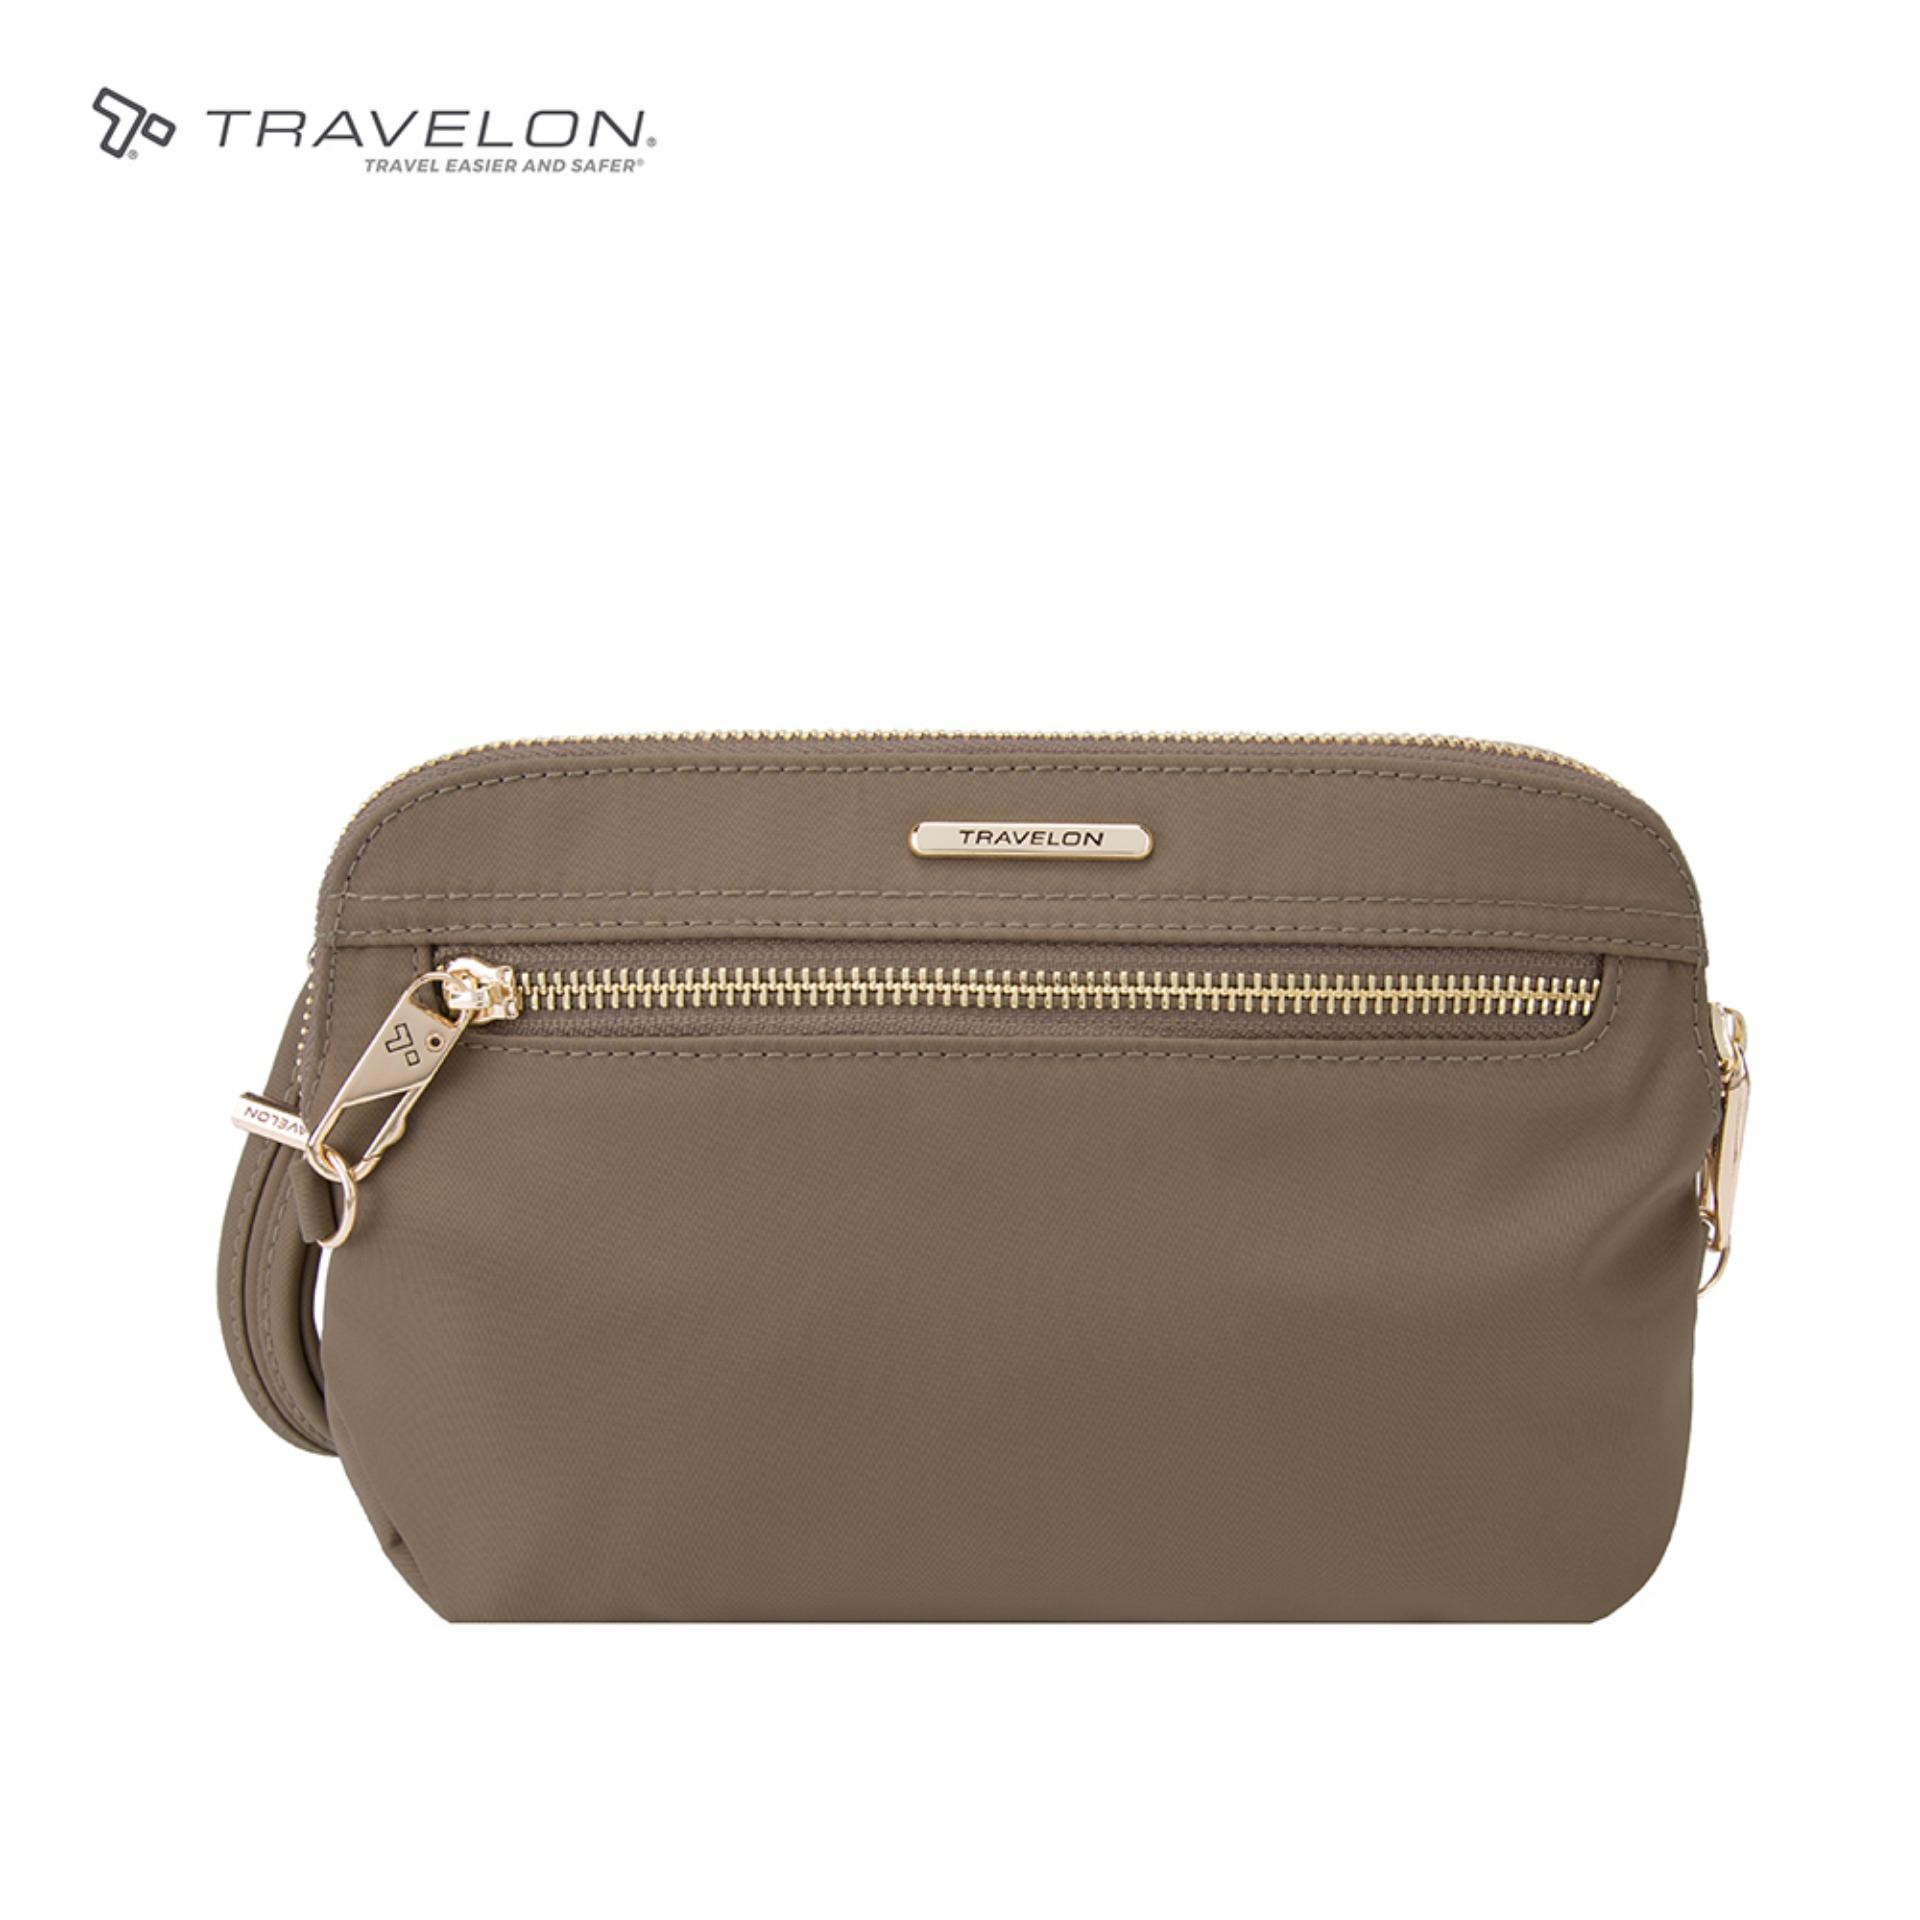 Travelon Anti-Theft RFID Protected Tailored Travel Safety 3-way Convertible Clutch Crossbody